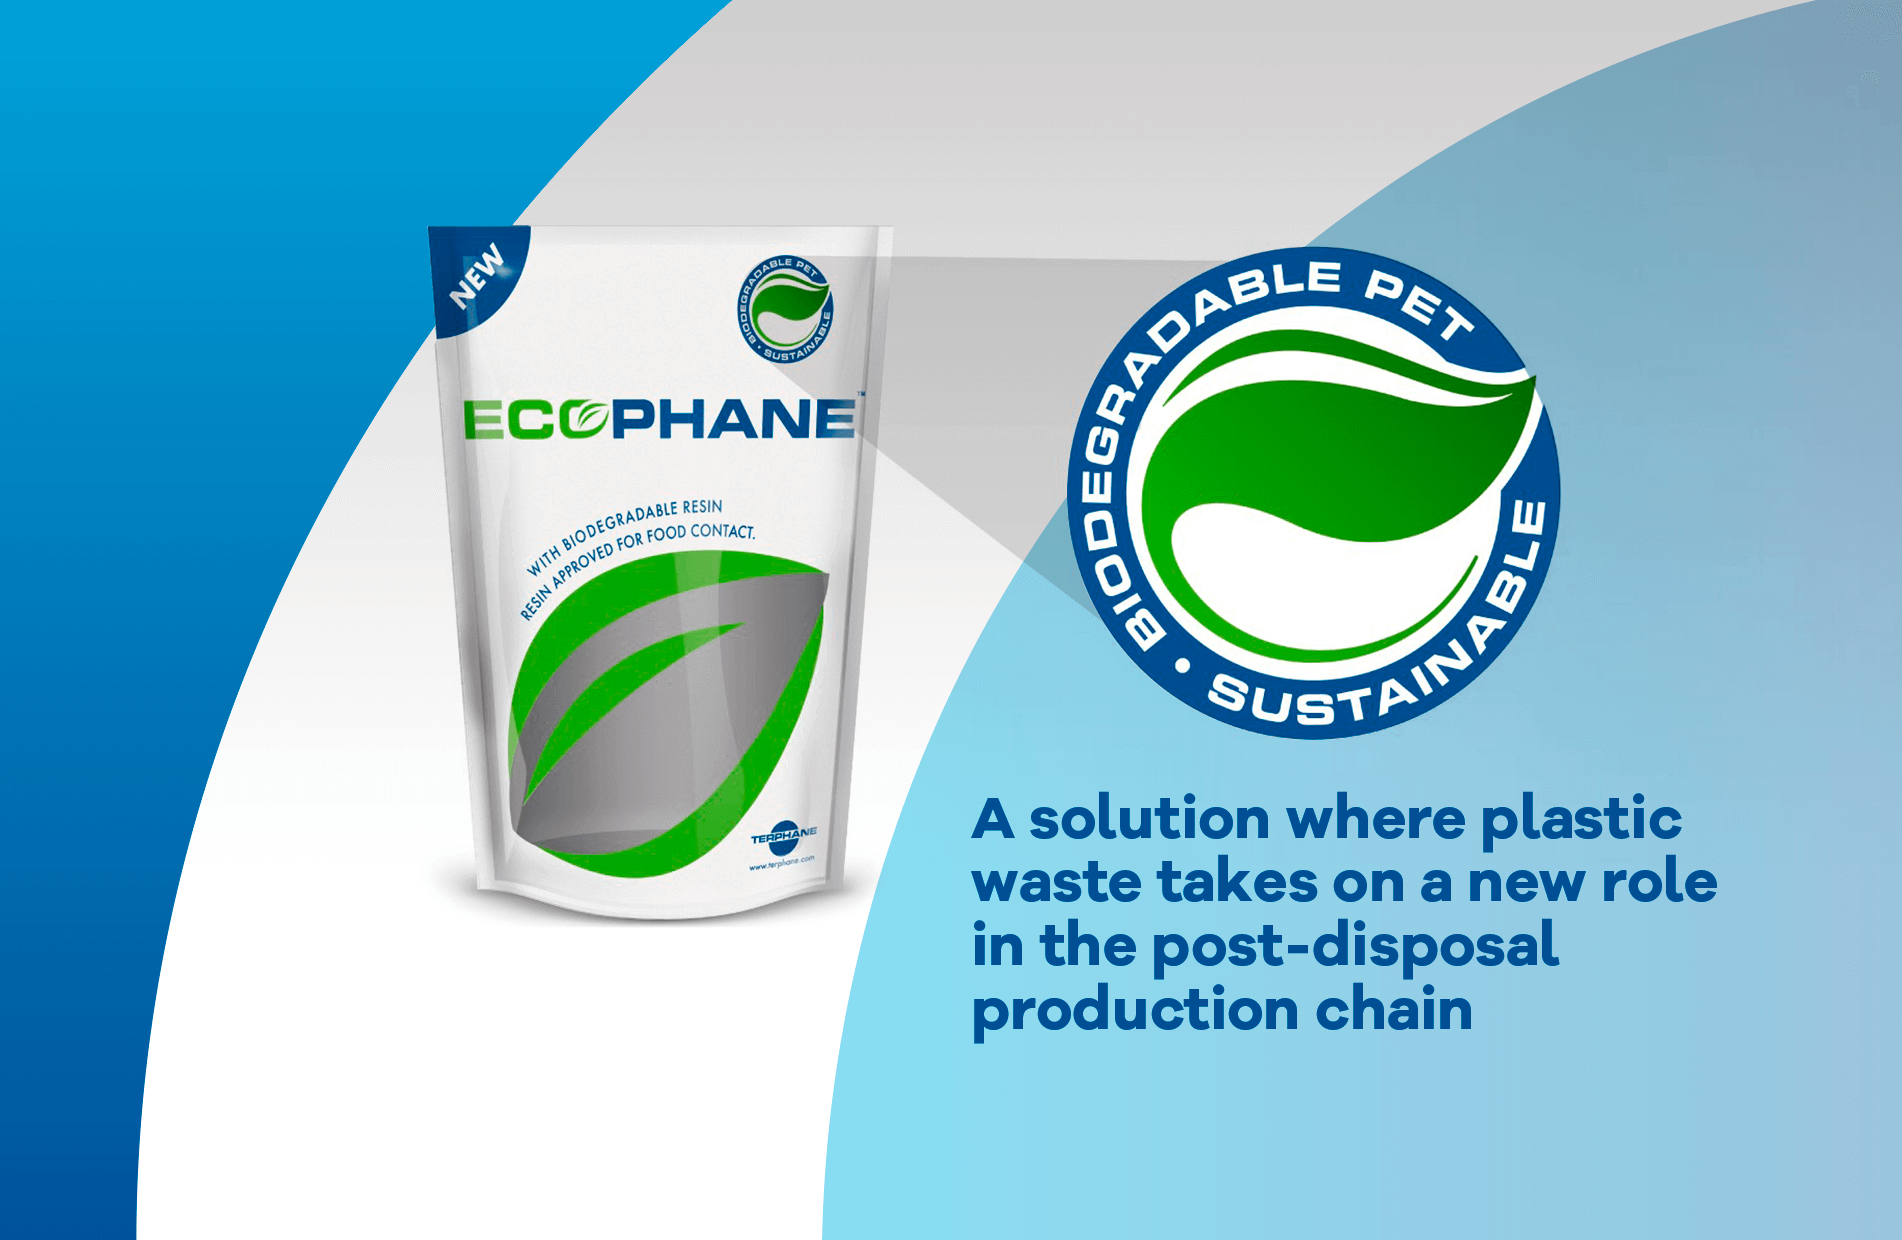 A solution where plastic waste takes on a new role in the post-disposal production chain